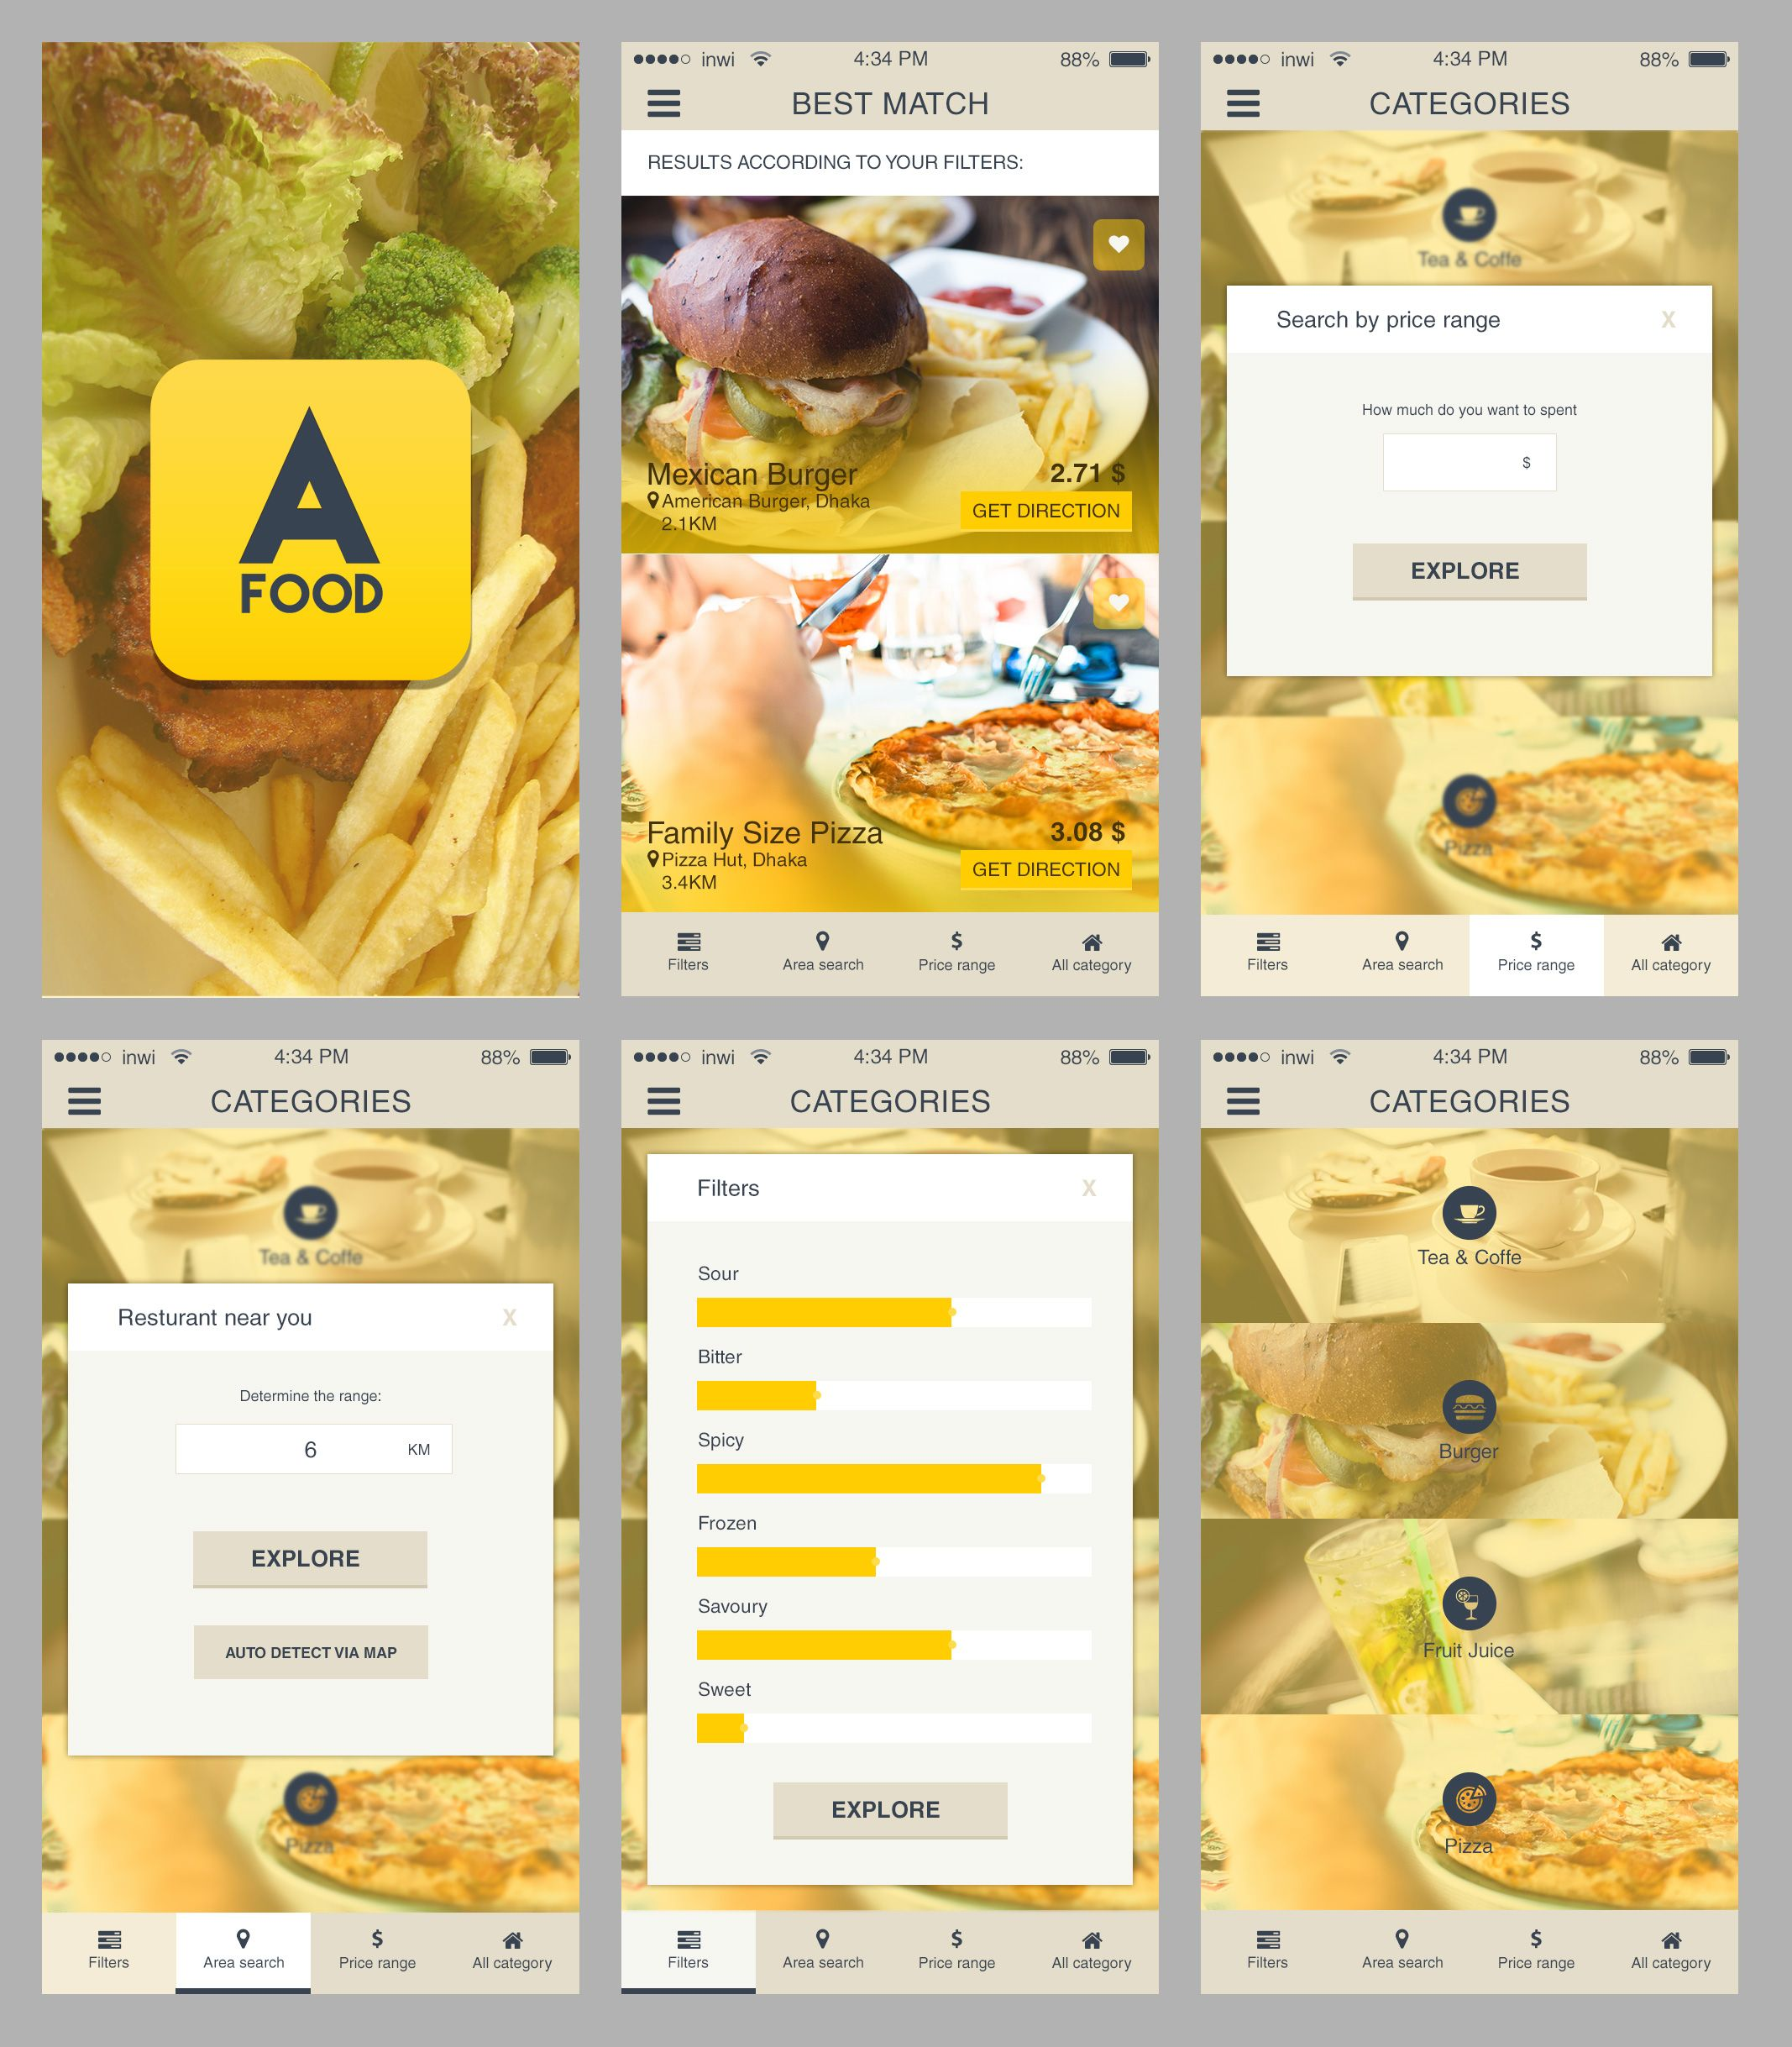 Free ios restaurant finder app freepsd psd appdesigns more psd free ios restaurant finder app freepsd psd appdesigns more psd forumfinder Image collections